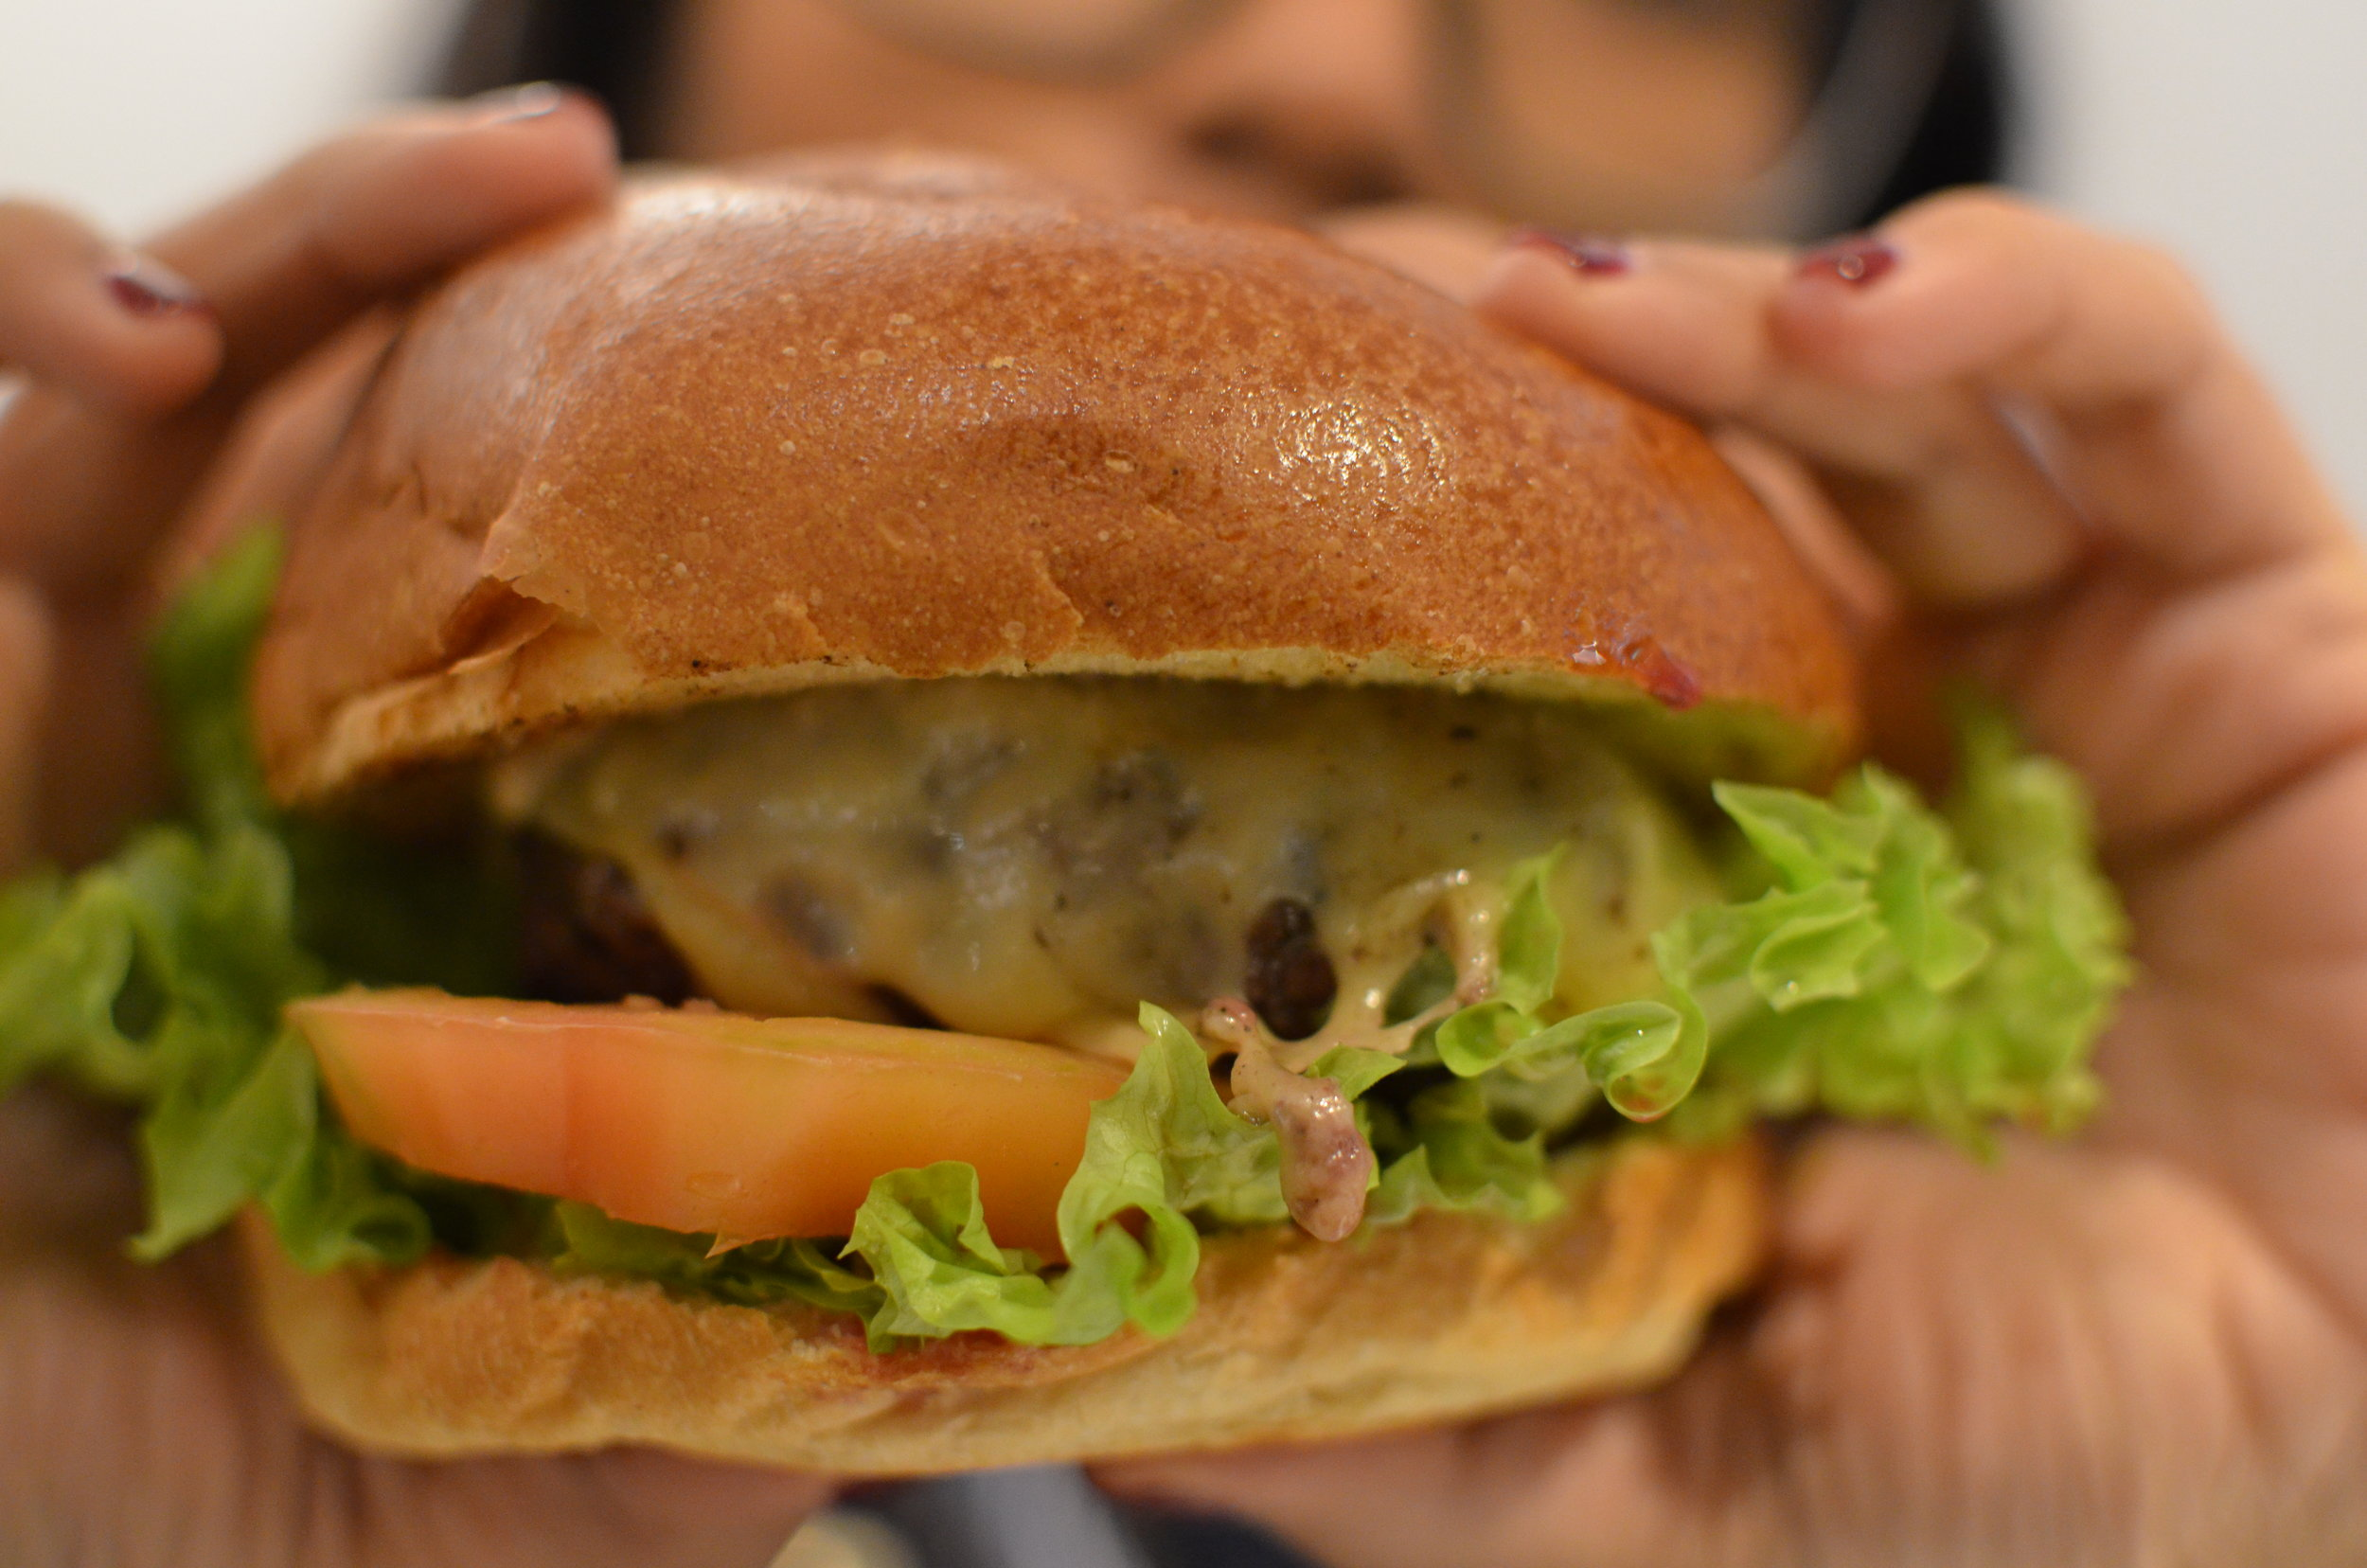 The Butcher with cheese- Prime Aberdeen Angus beef, lettuce, tomato, gherkin, grilled onion & Dutch Edam cheese.